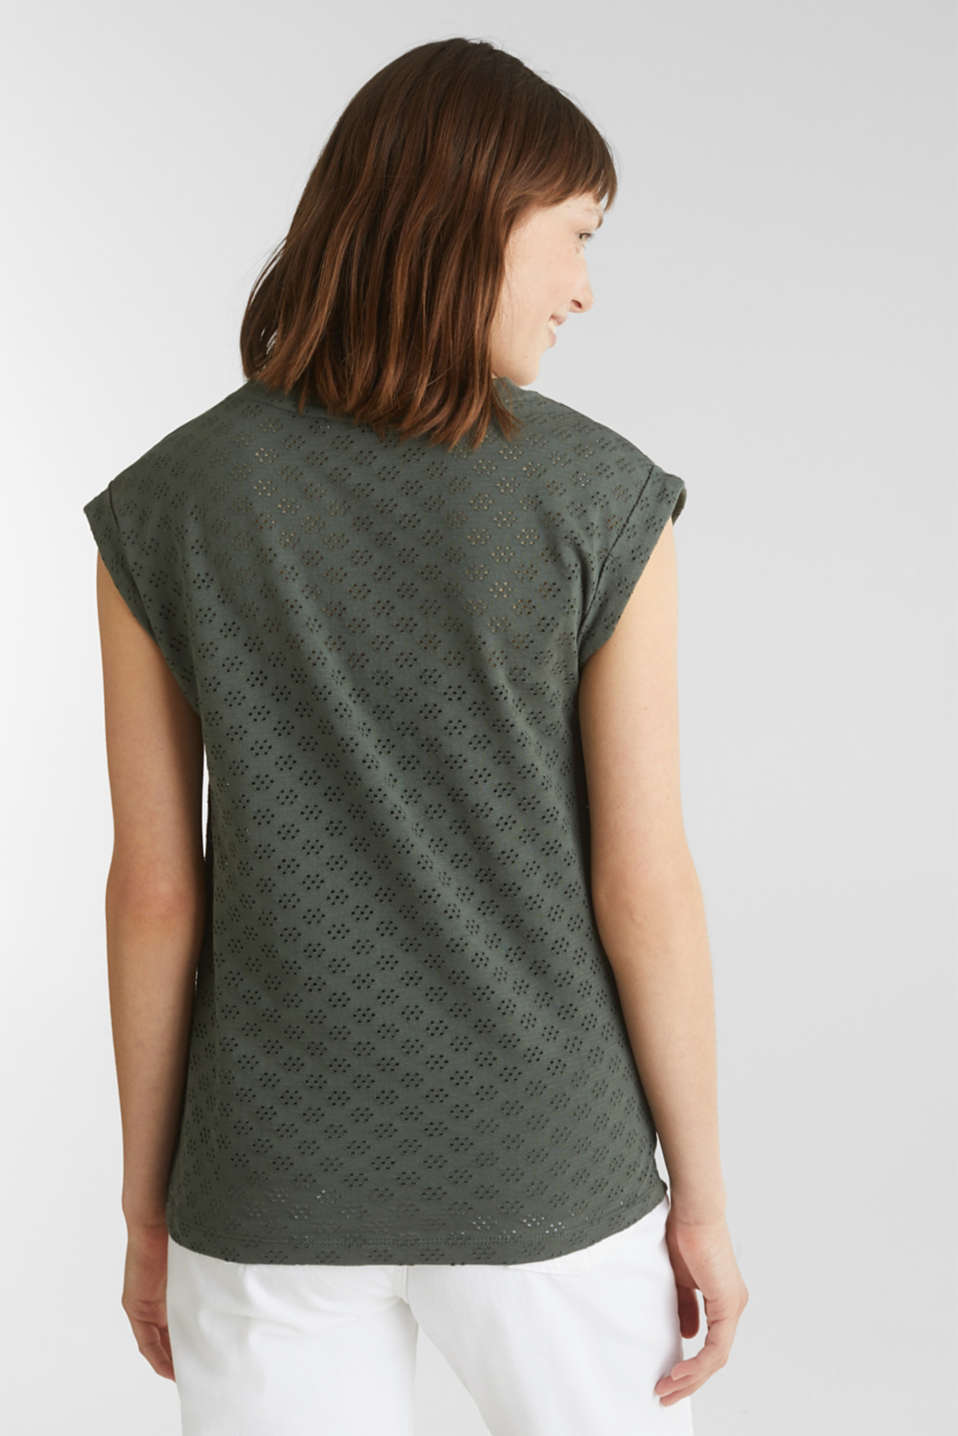 Openwork top made of 100% cotton, KHAKI GREEN, detail image number 3